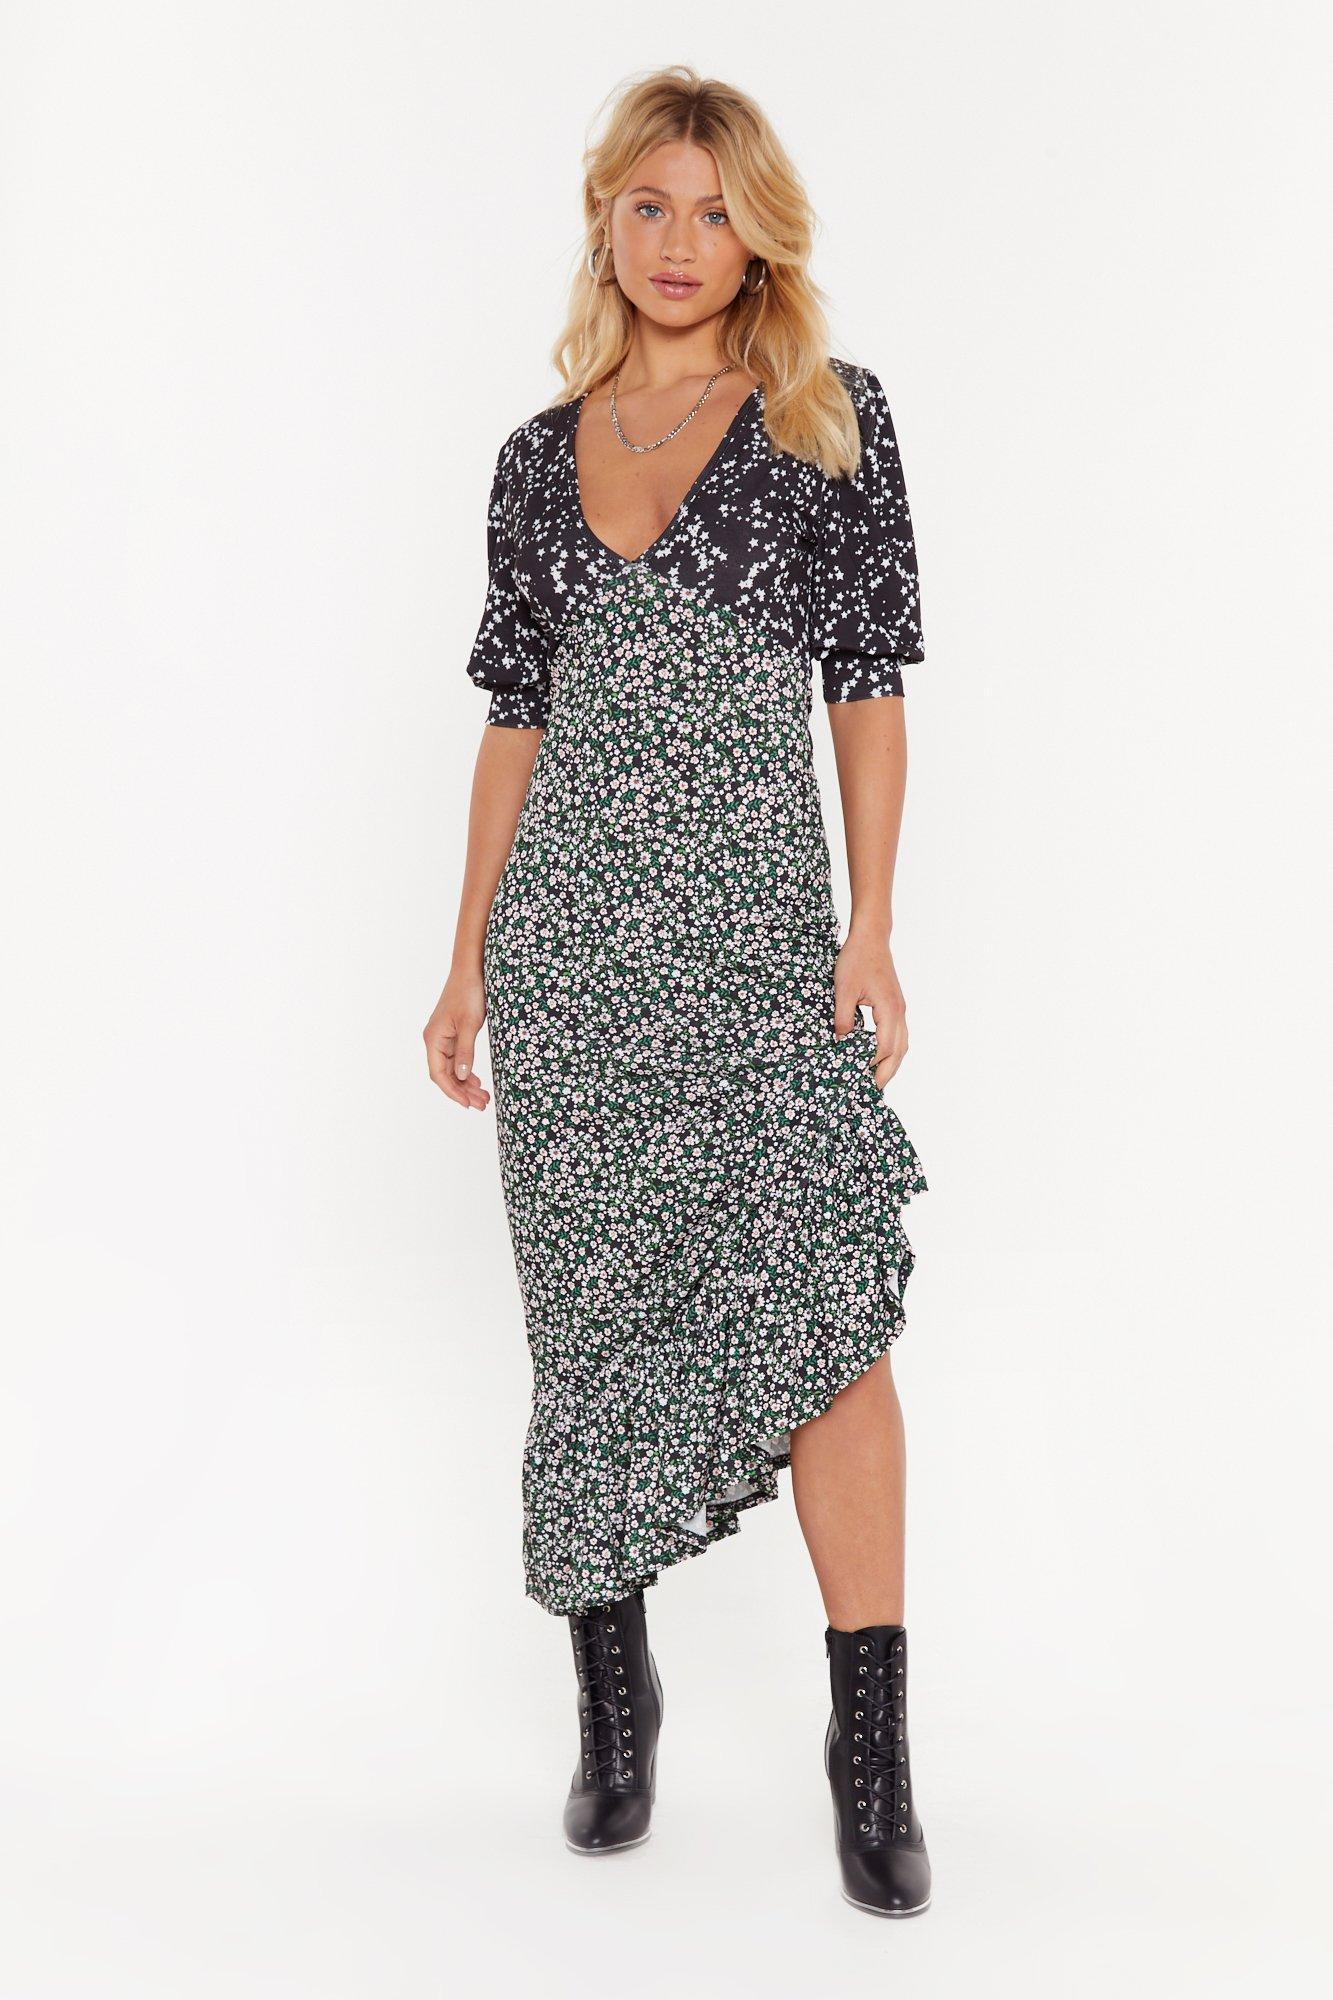 You'll Thank V Later Star Floral Maxi Dress | Nasty Gal